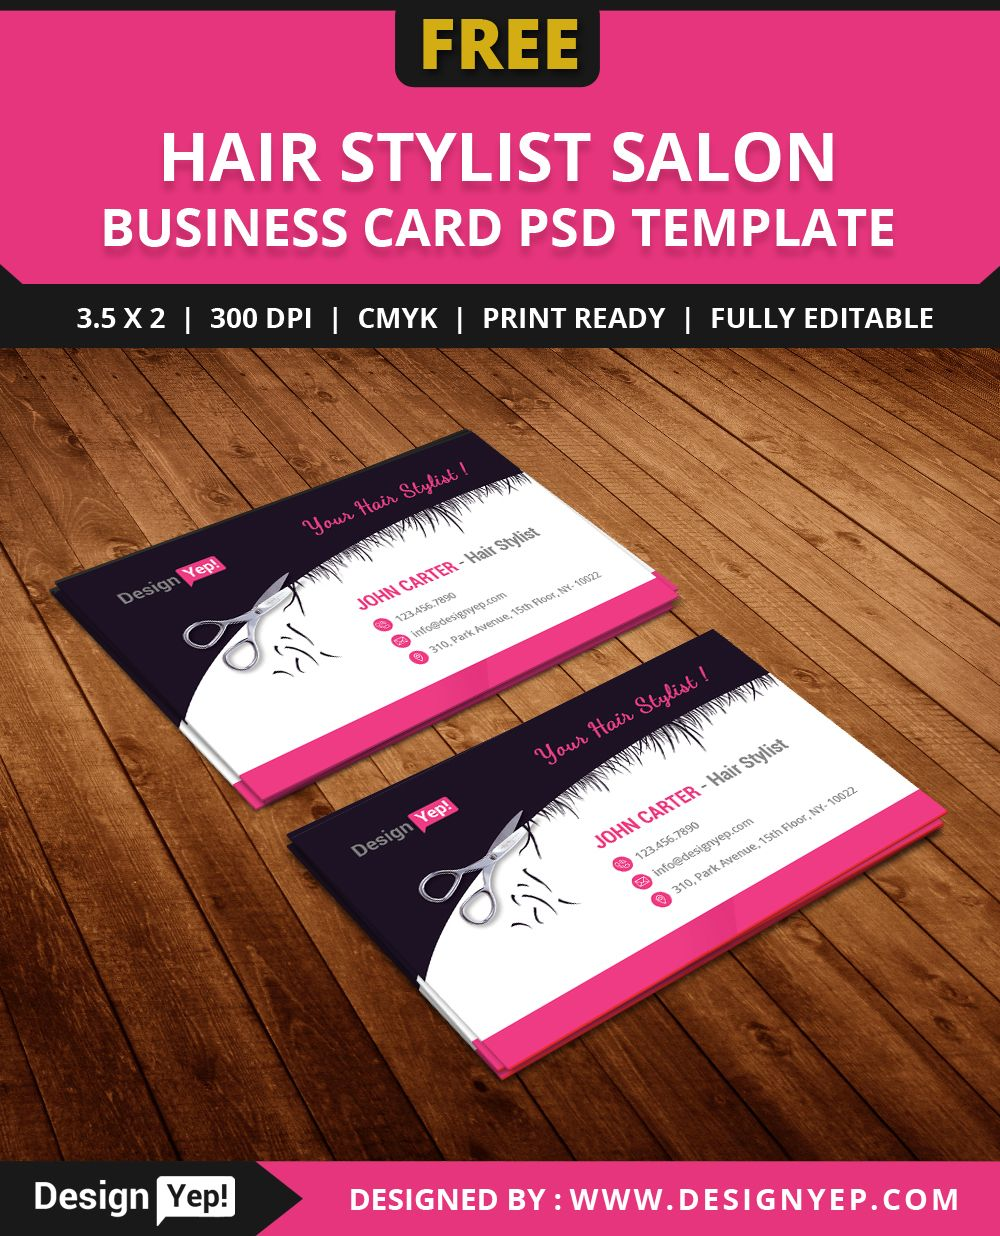 Free-Hair-Stylist-Salon-Business-Card-Template-PSD | Free Business ...